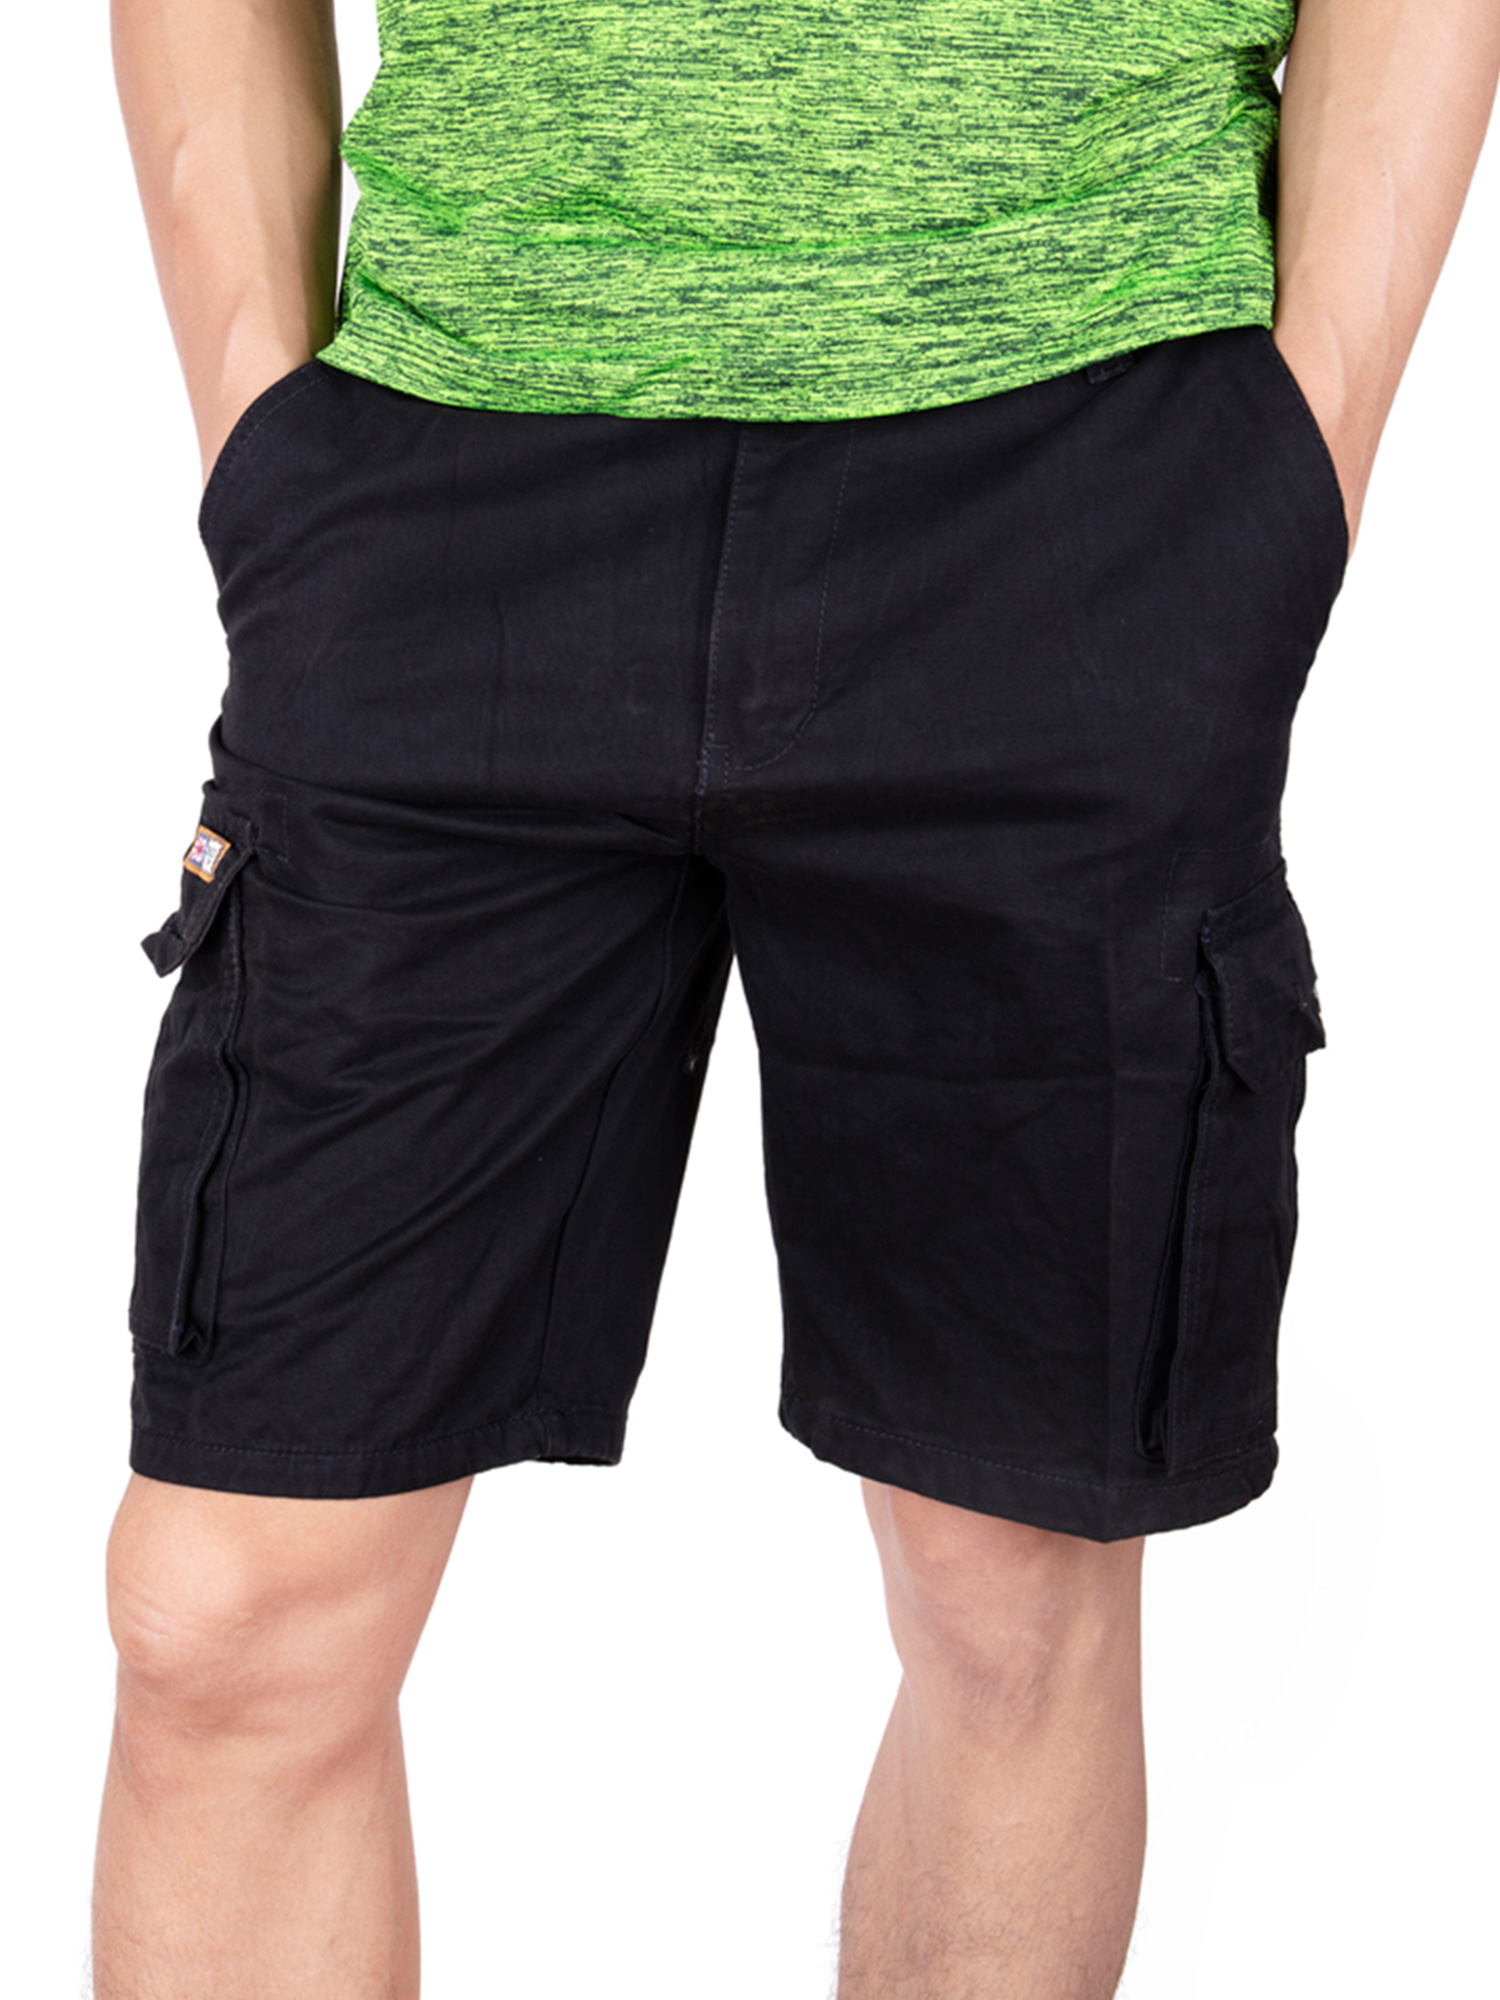 SAYFUT  Mens Cotton Twil Chino Shorts Relaxed Fit Outdoor Casual Cargo Shorts Black Size XS-4XL